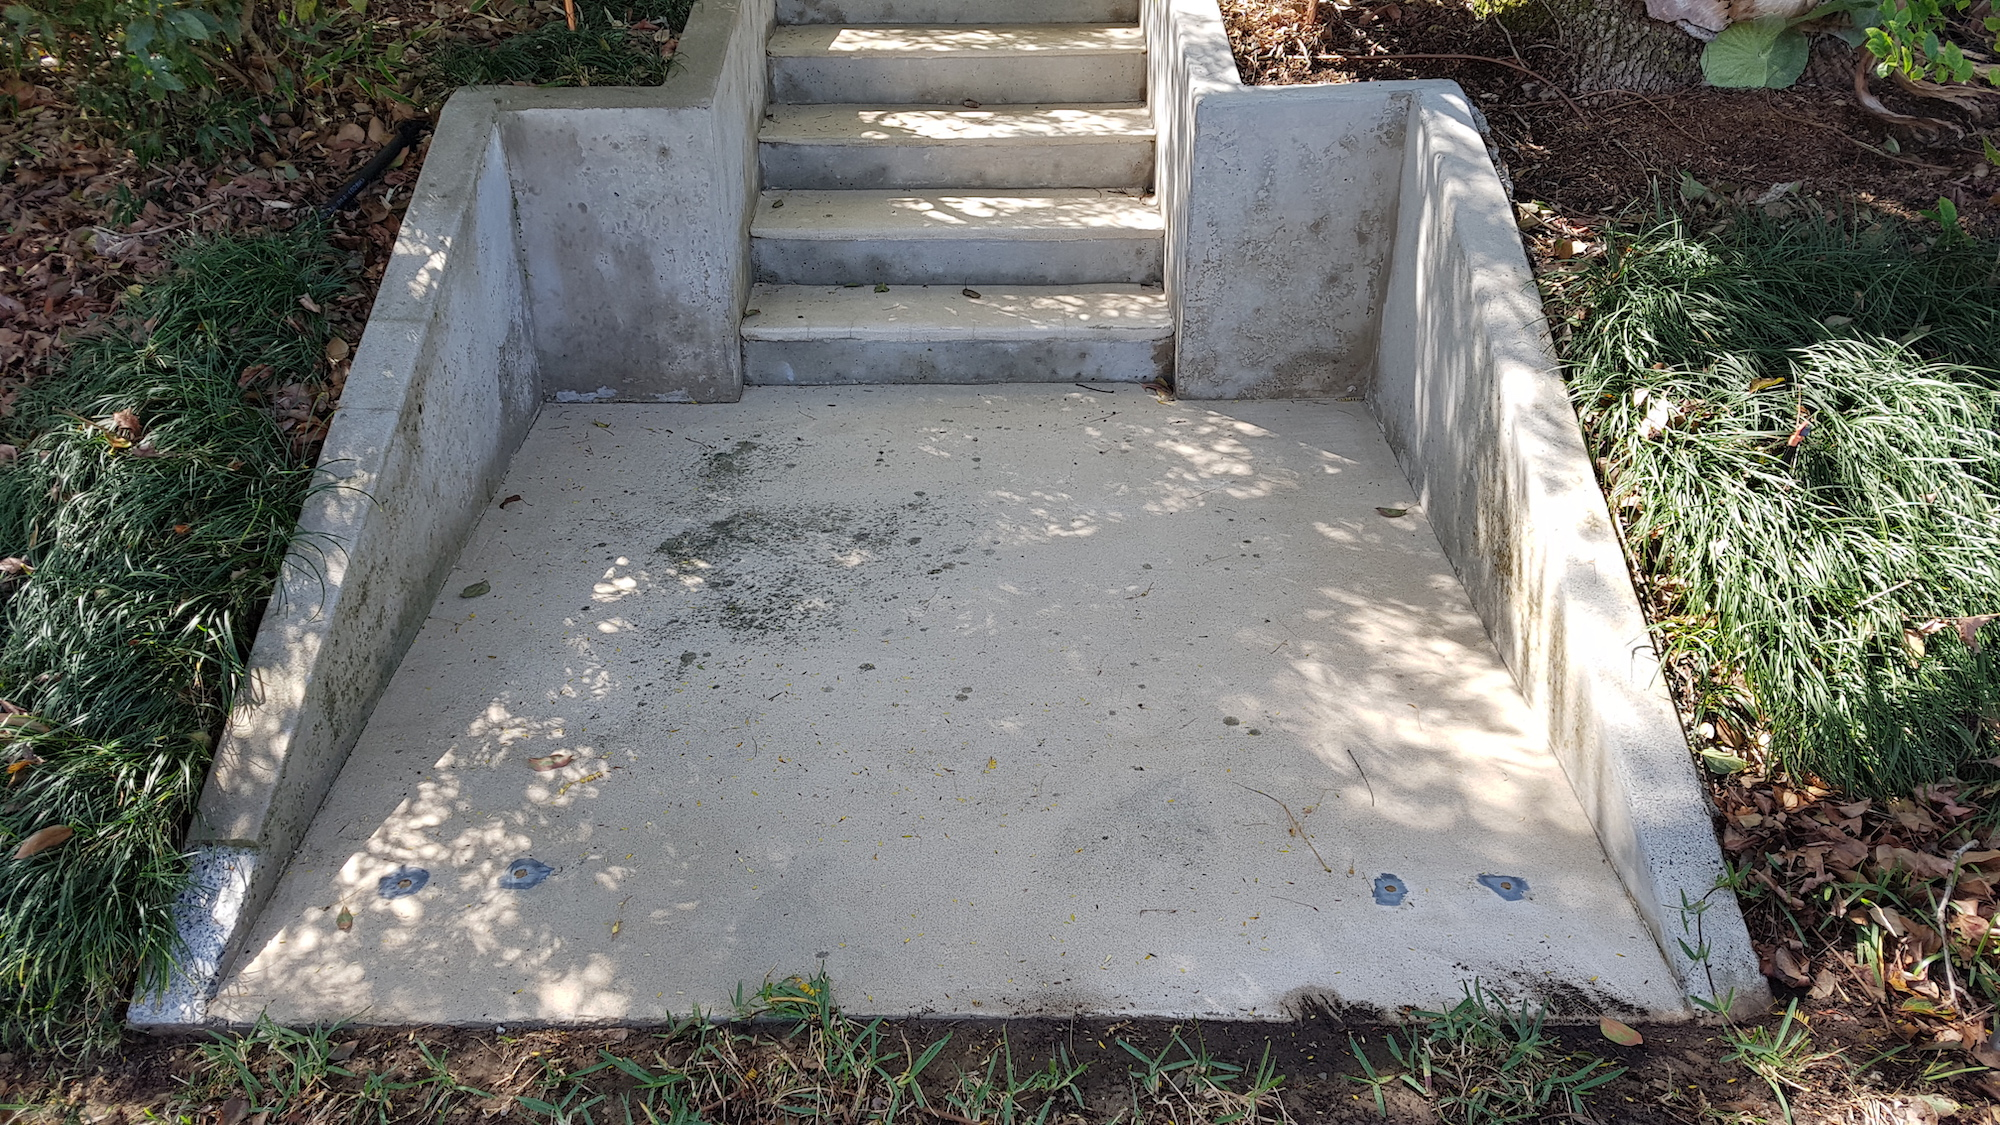 Concrete & Stairs - still some moss deep in the concrete